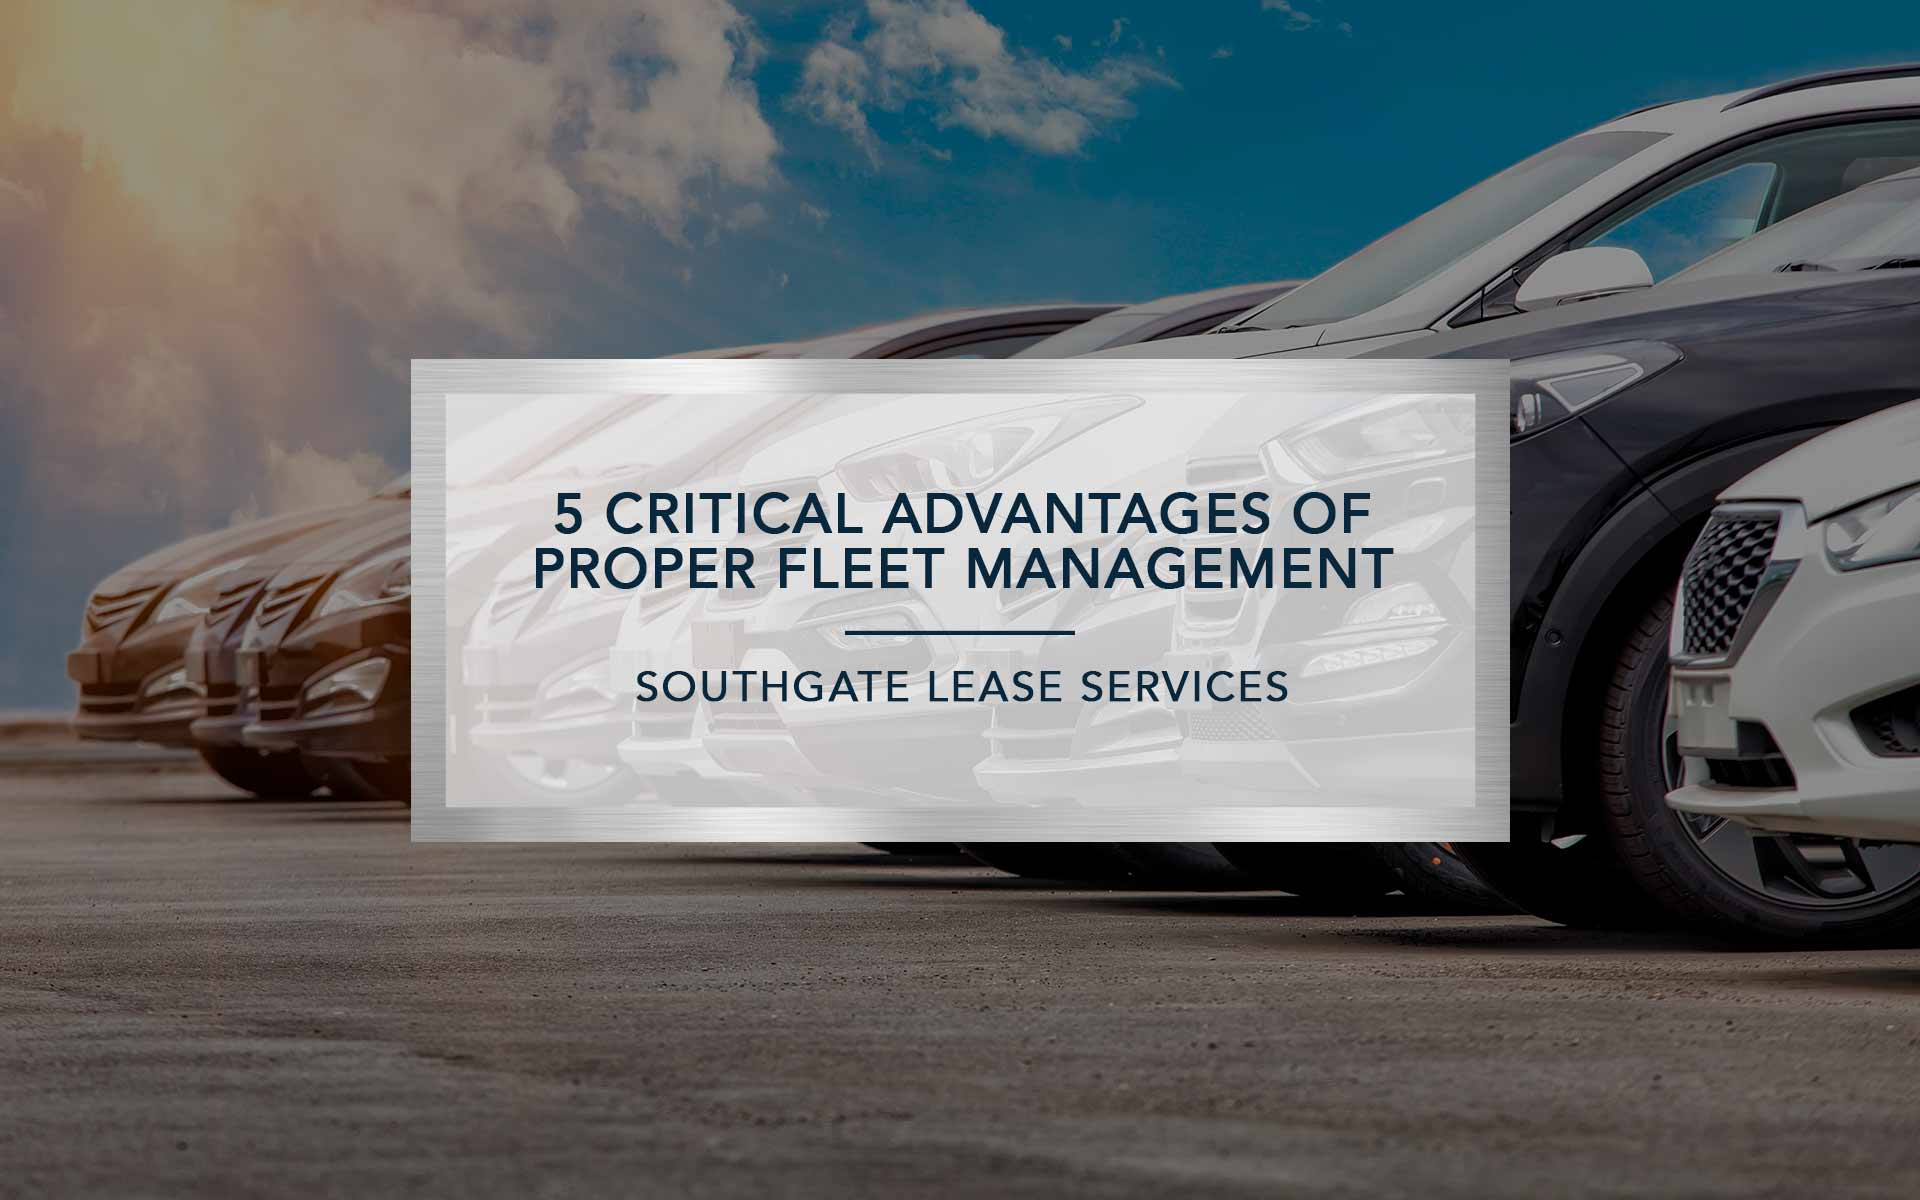 5 Critical Advantages | Southgate Lease Services